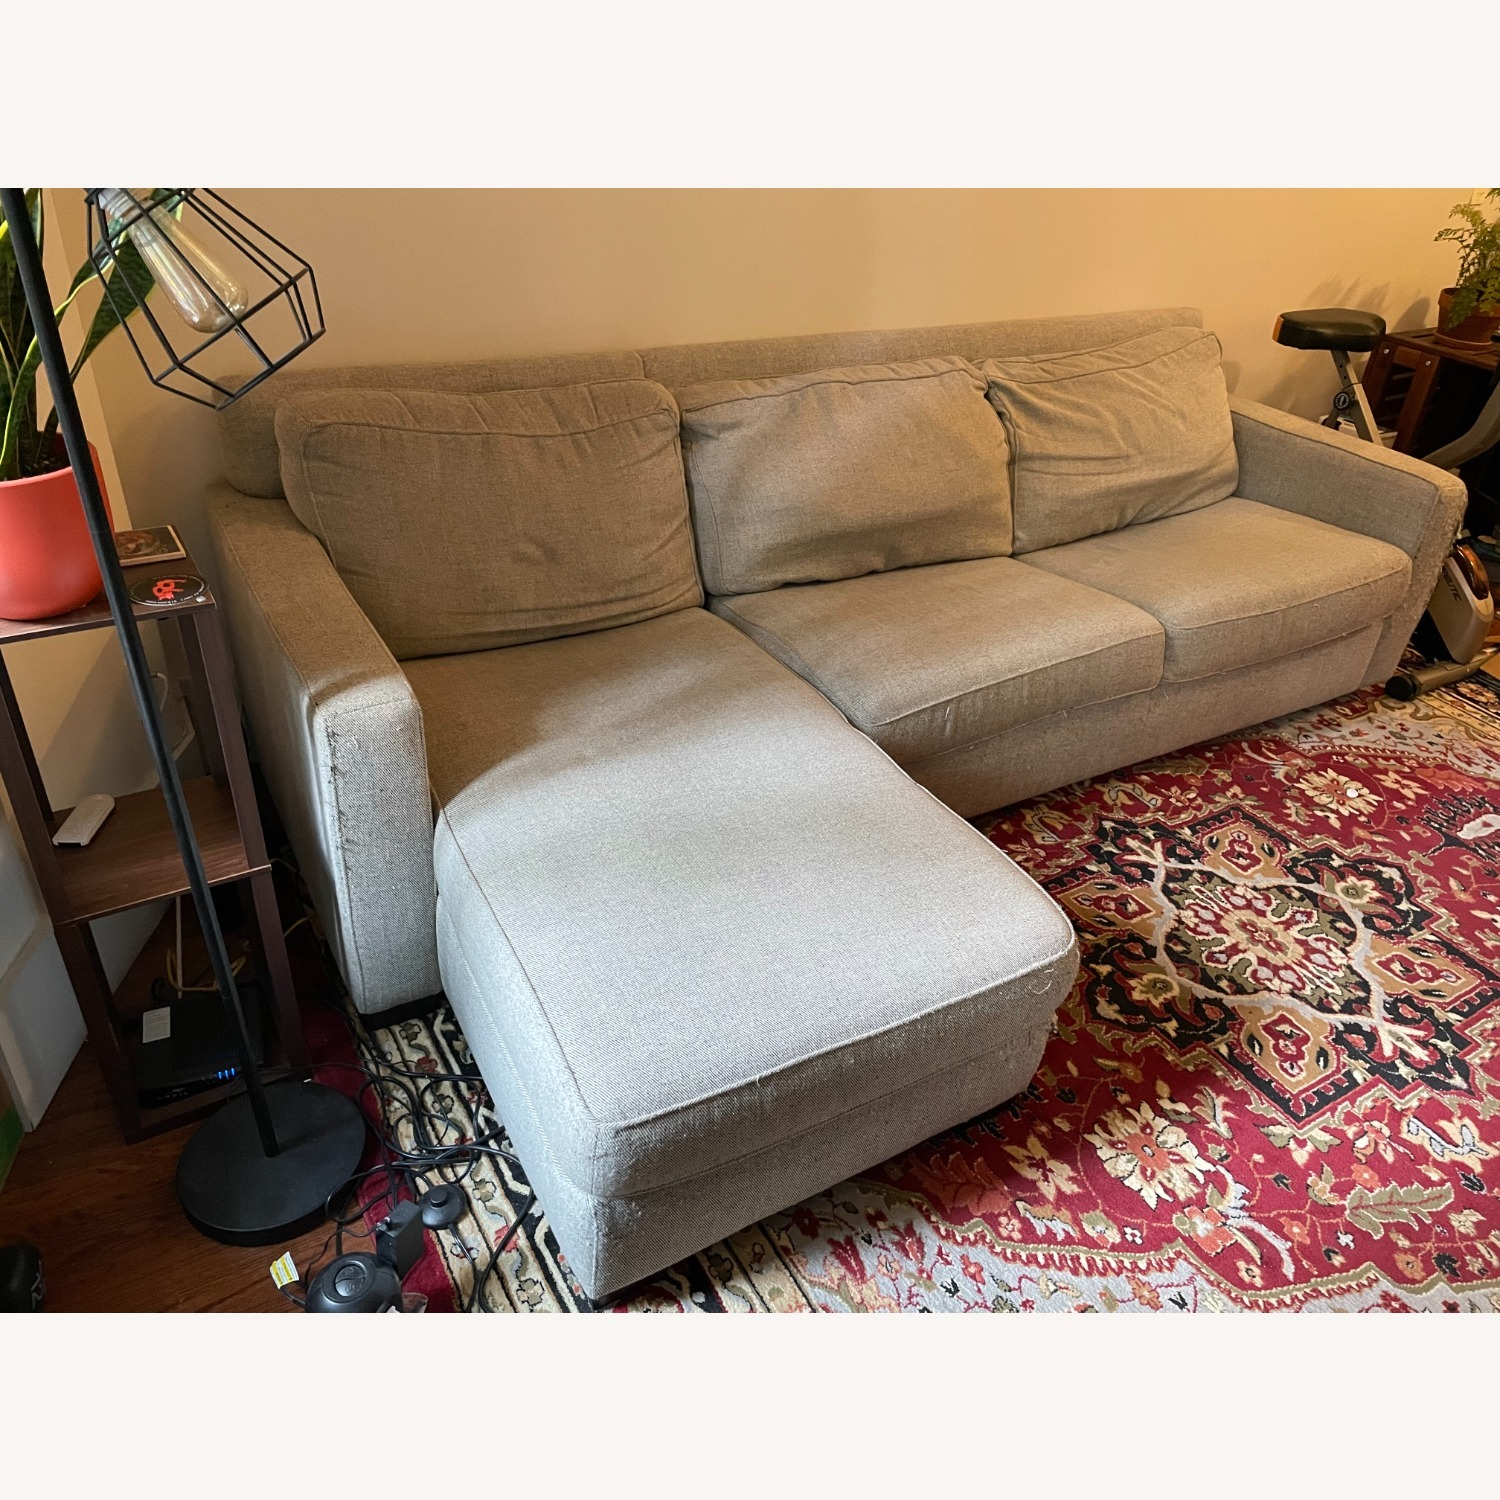 West Elm Gray Henry Sleeper Sofa with Chaise - image-1